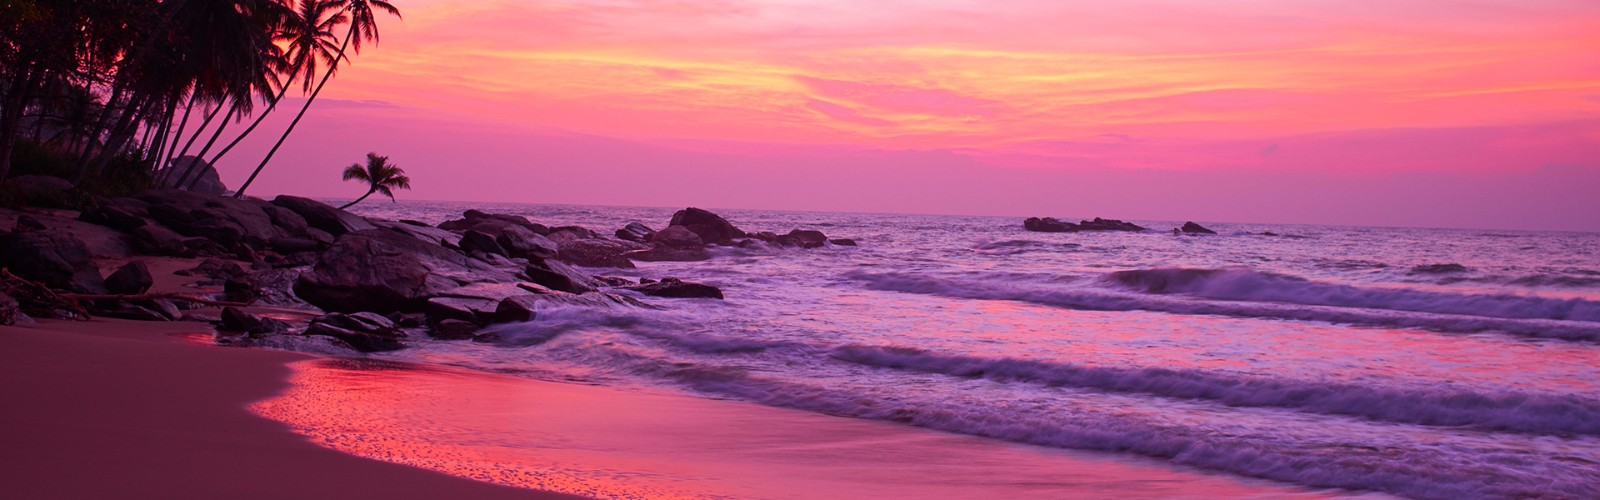 Golden Beaches of Goa tour